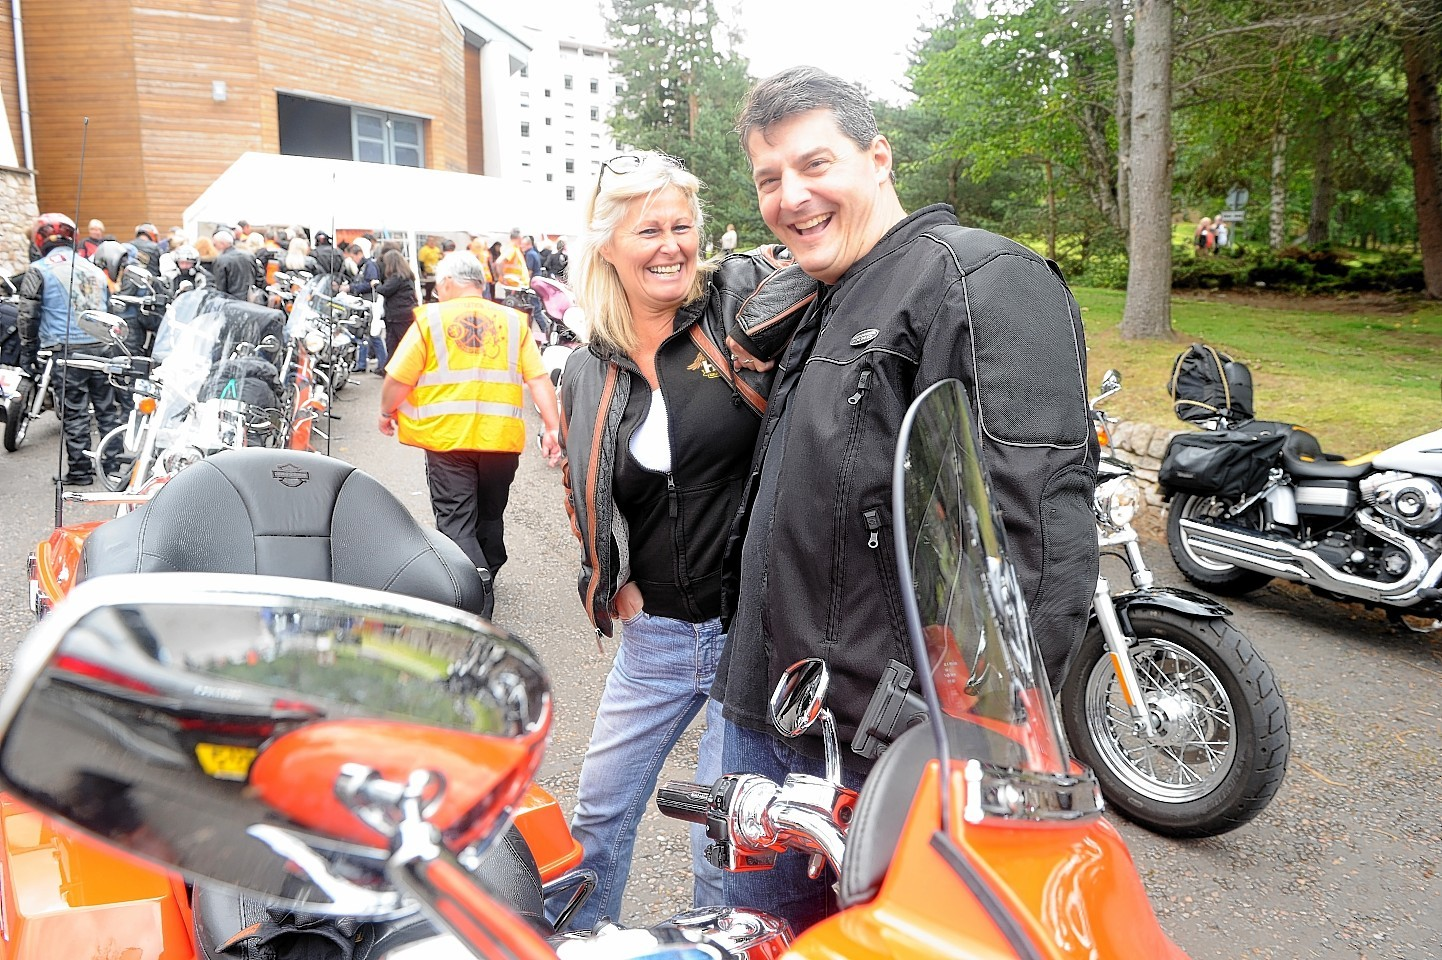 Europe's largest Harley Davidson event